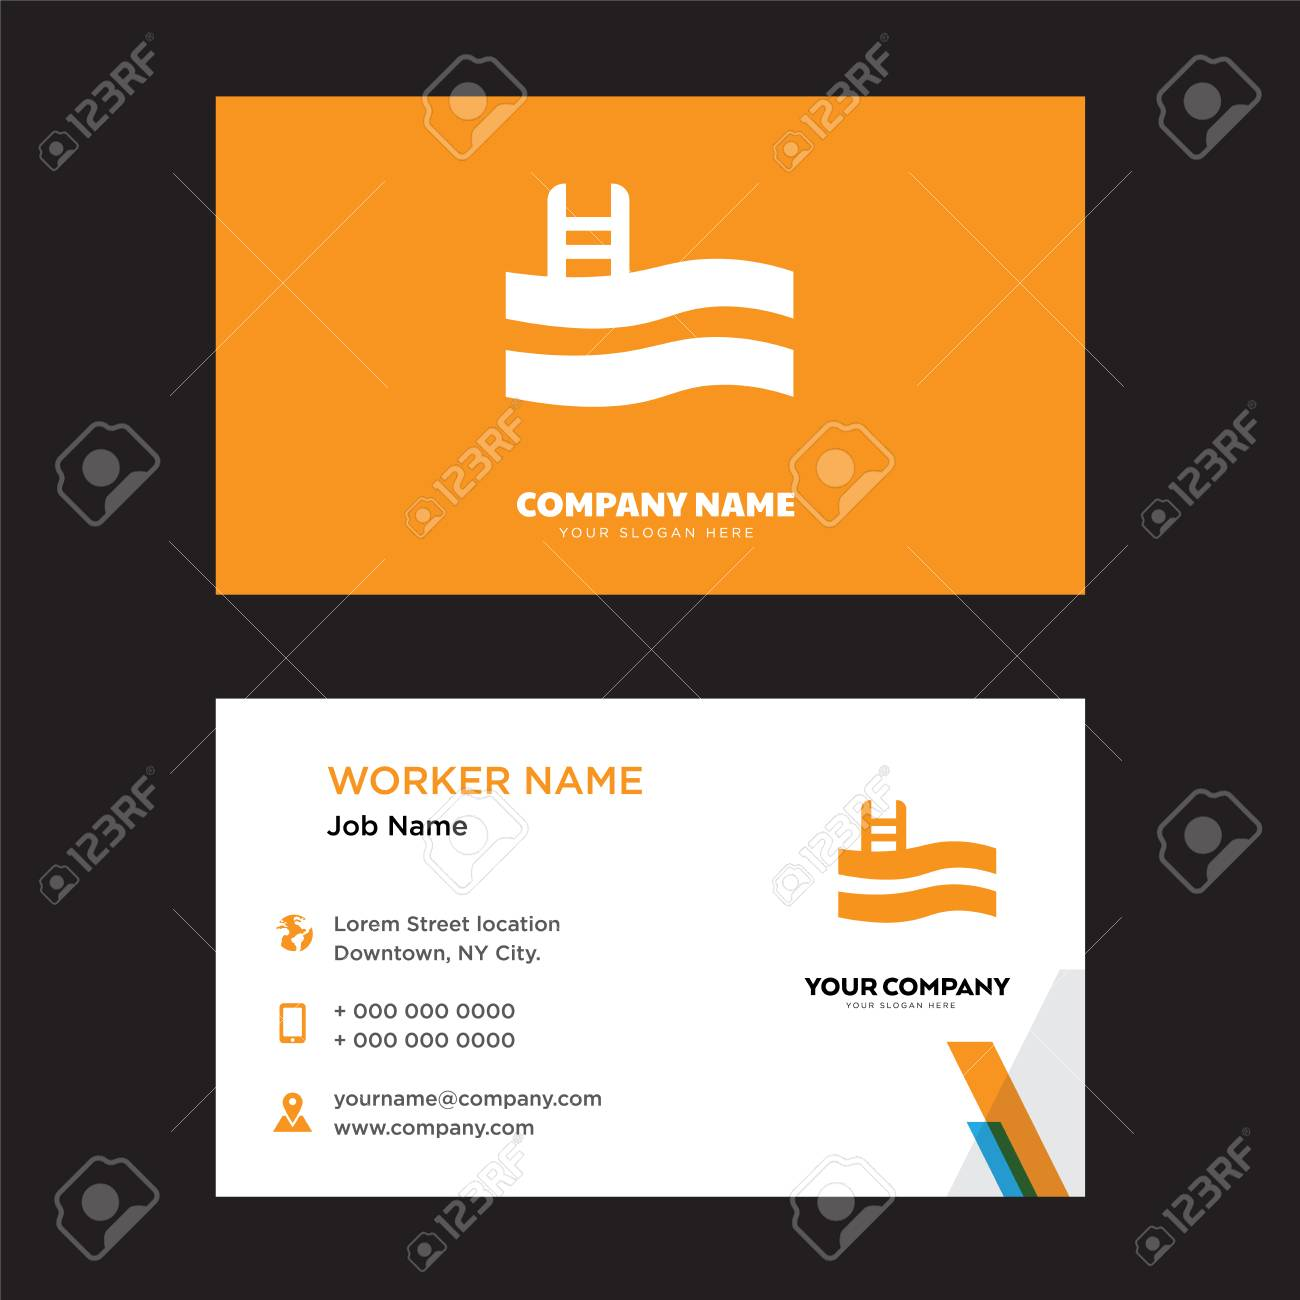 Swimming pool business card design template visiting for your swimming pool business card design template visiting for your company modern horizontal identity card colourmoves